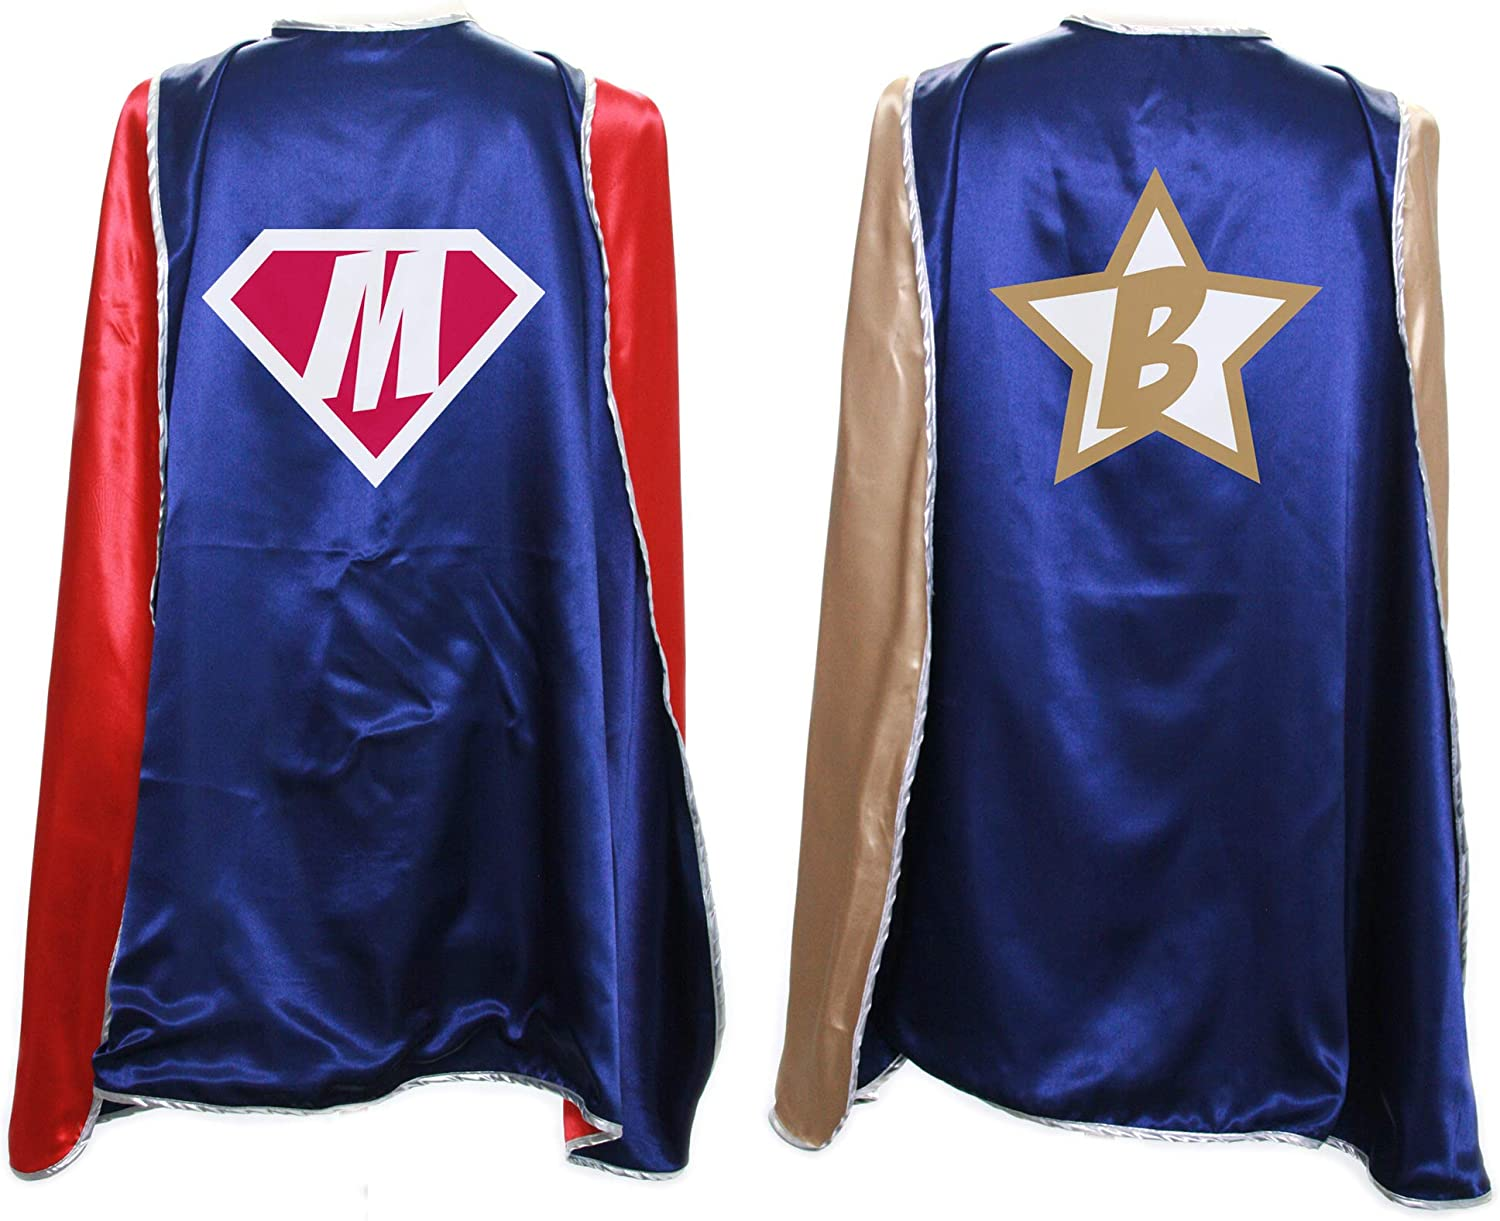 Everfan Personalized Superhero Capes for Adults | Custom Adult Super Hero Cape | Cape Costume | Polyester Satin